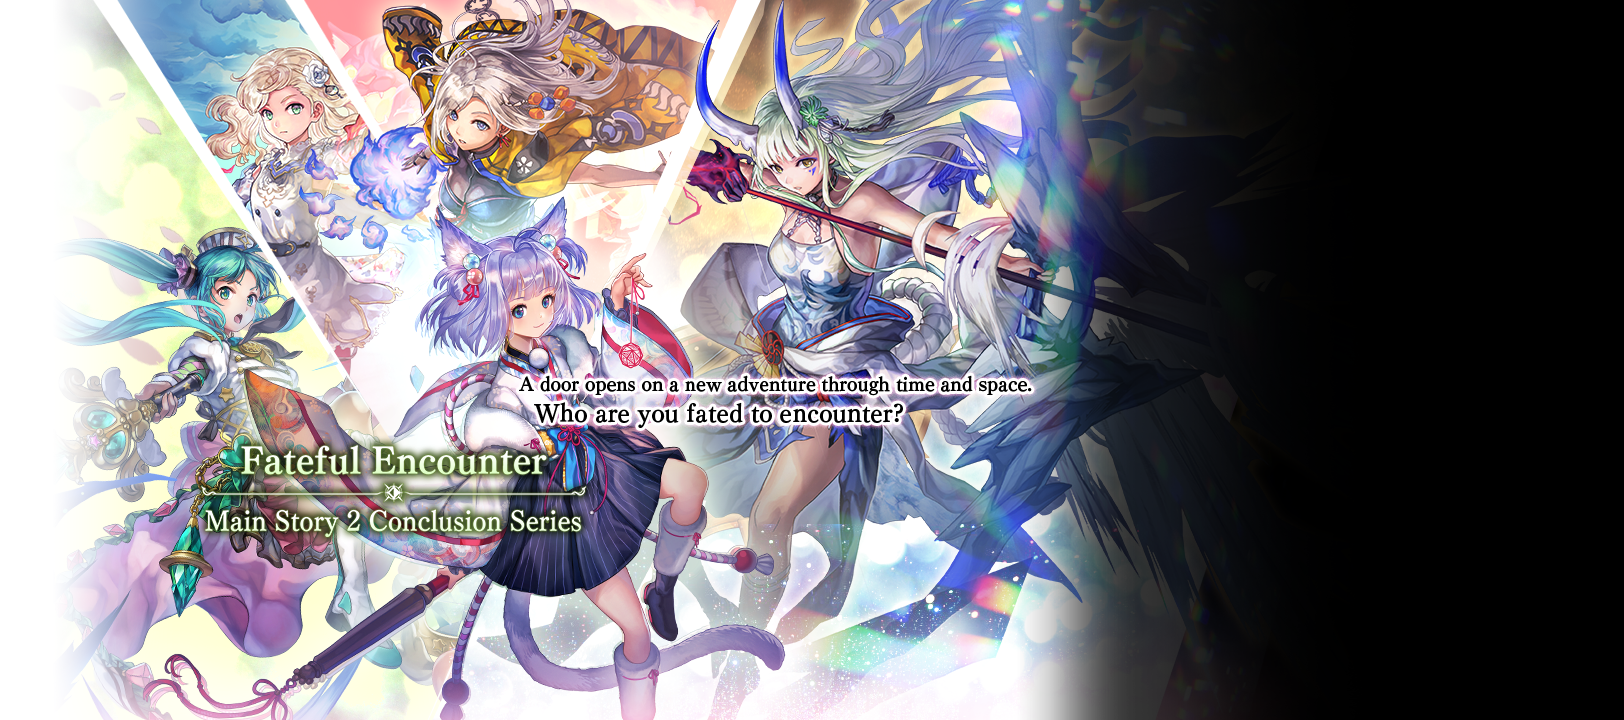 Fateful Encounter (2.8.5) Main Story Part 2 Conclusion Series.png